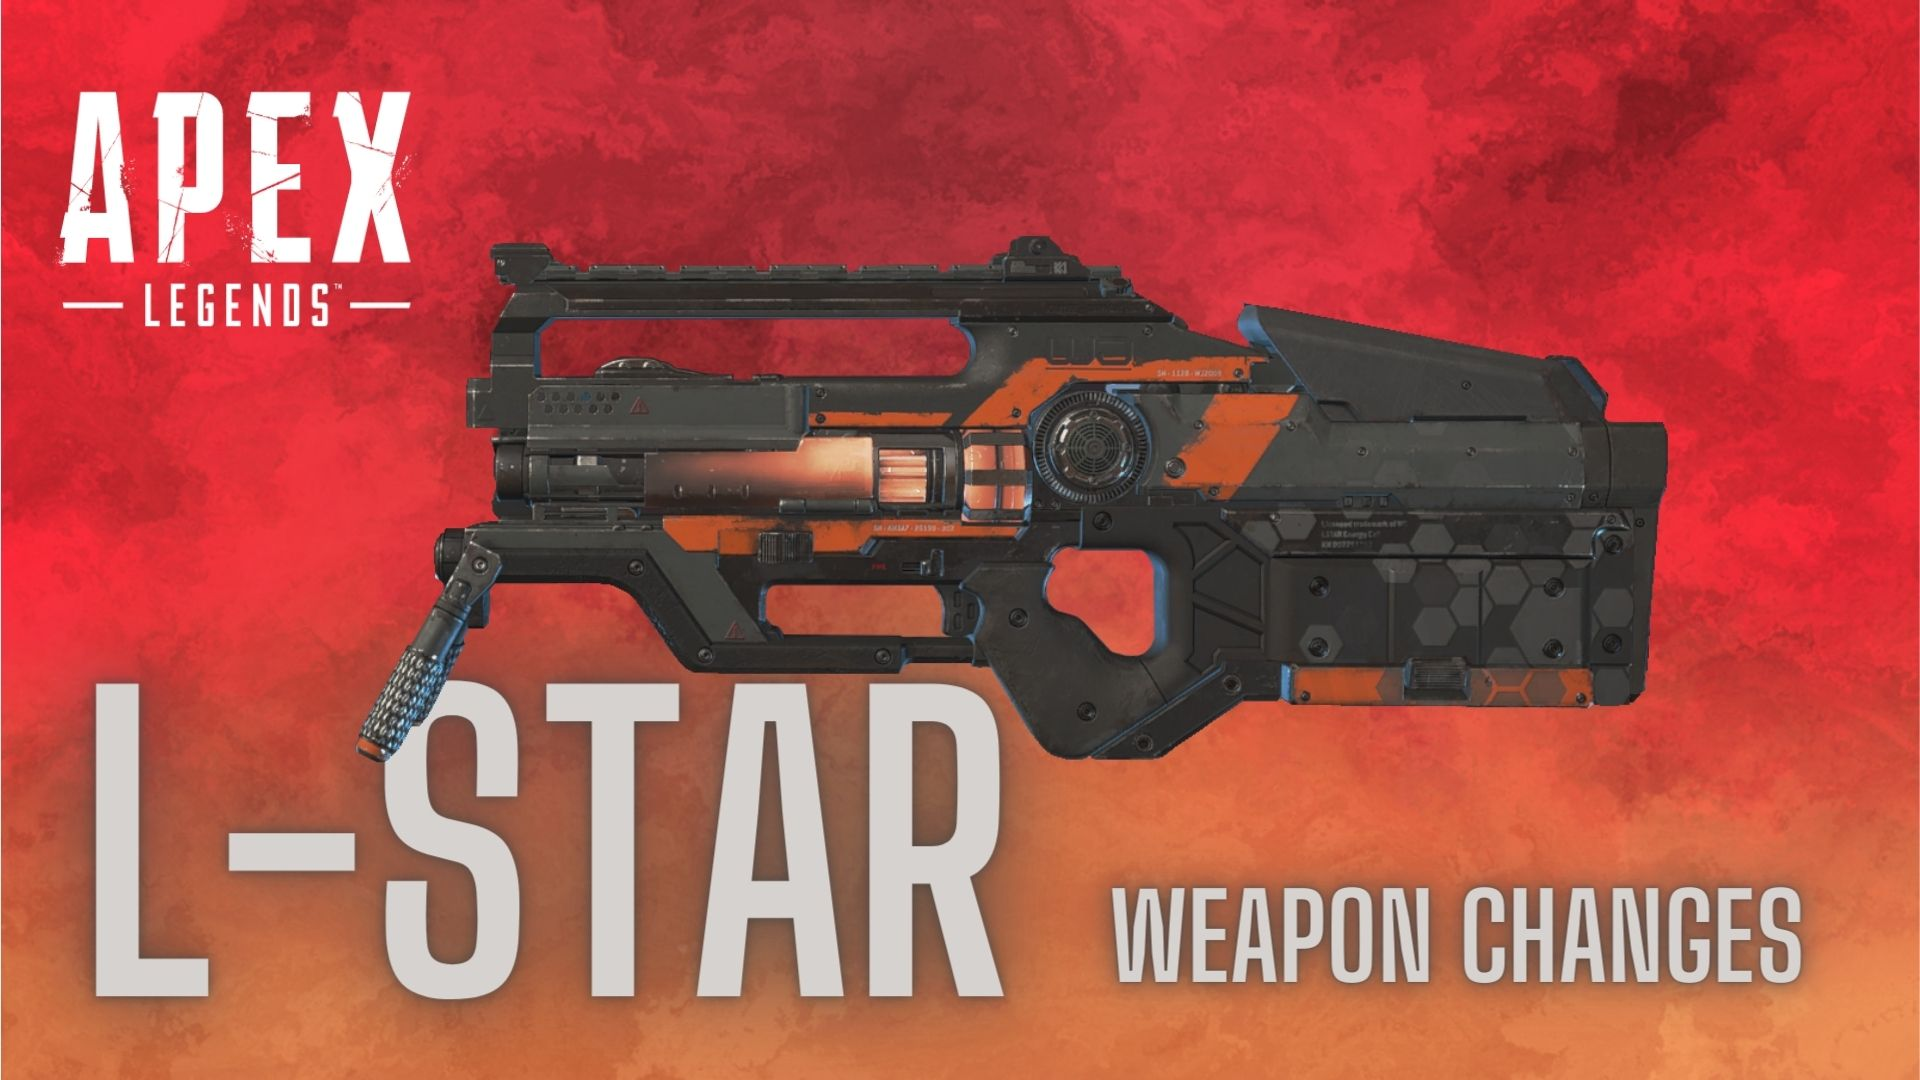 L-STAR weapon changes